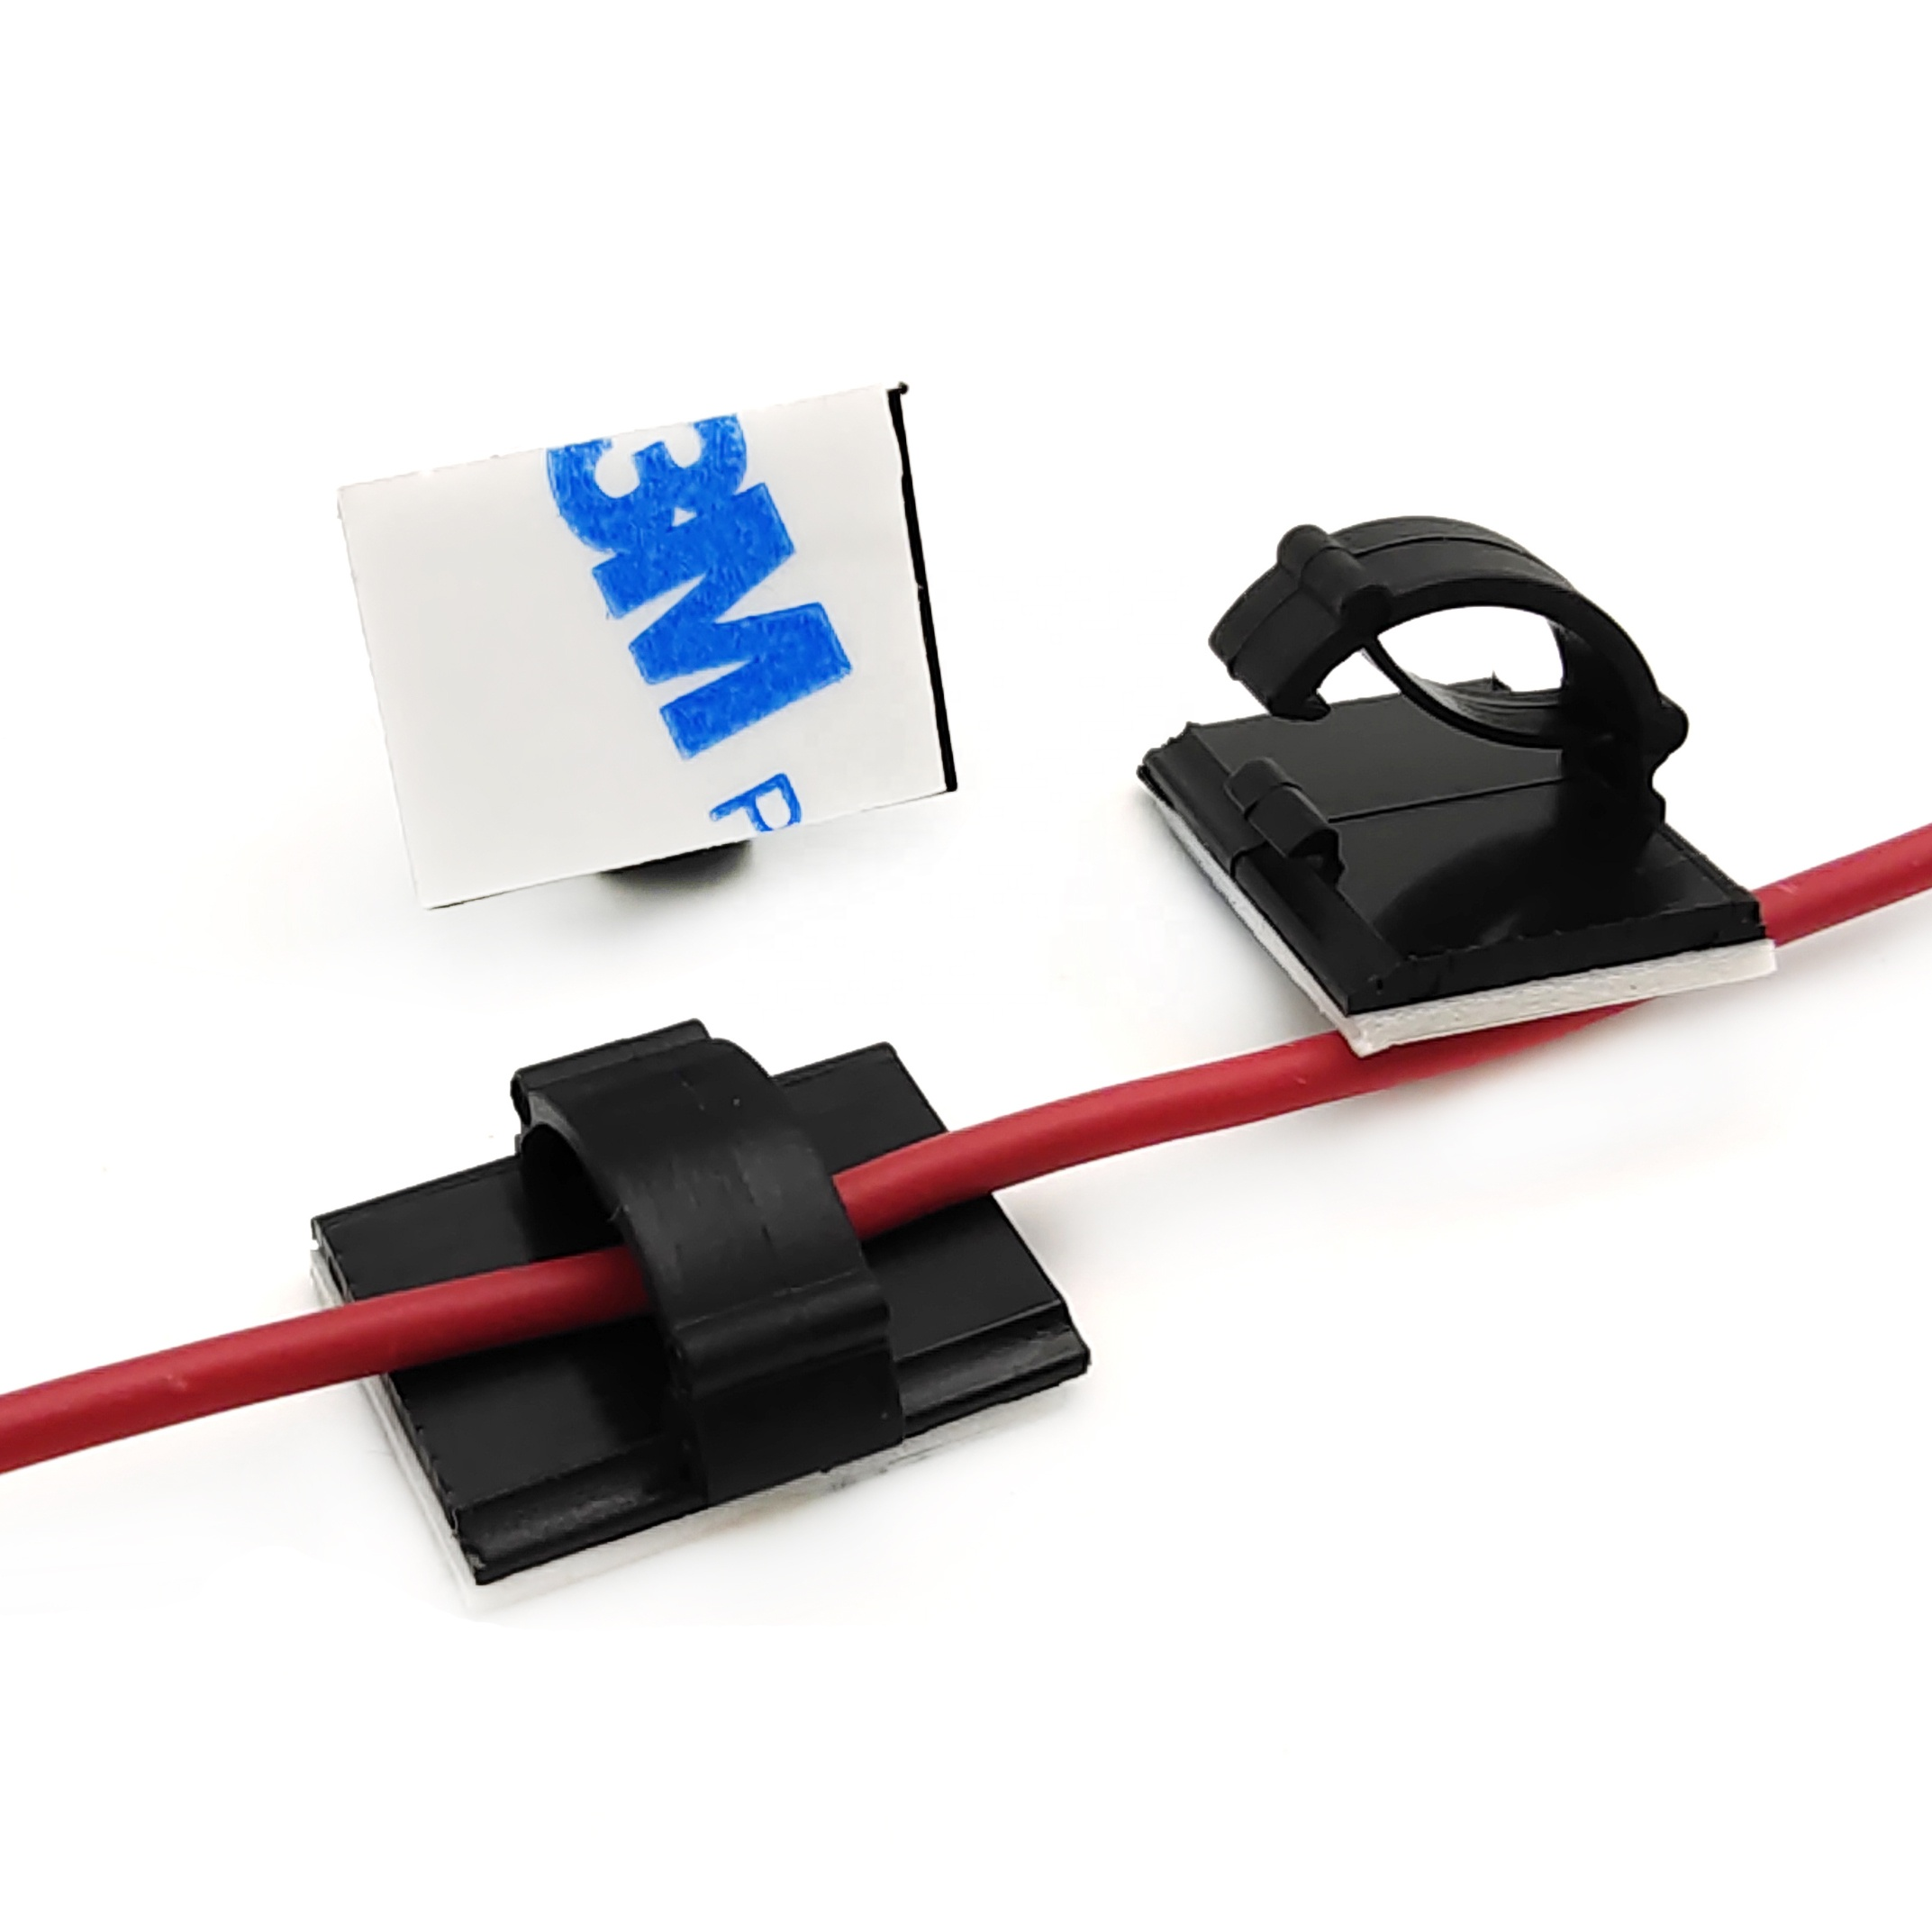 Adjustable cable tie holder with 3M adhesiveACT-22, nylon 66 cable clamp cable clips cord organizer